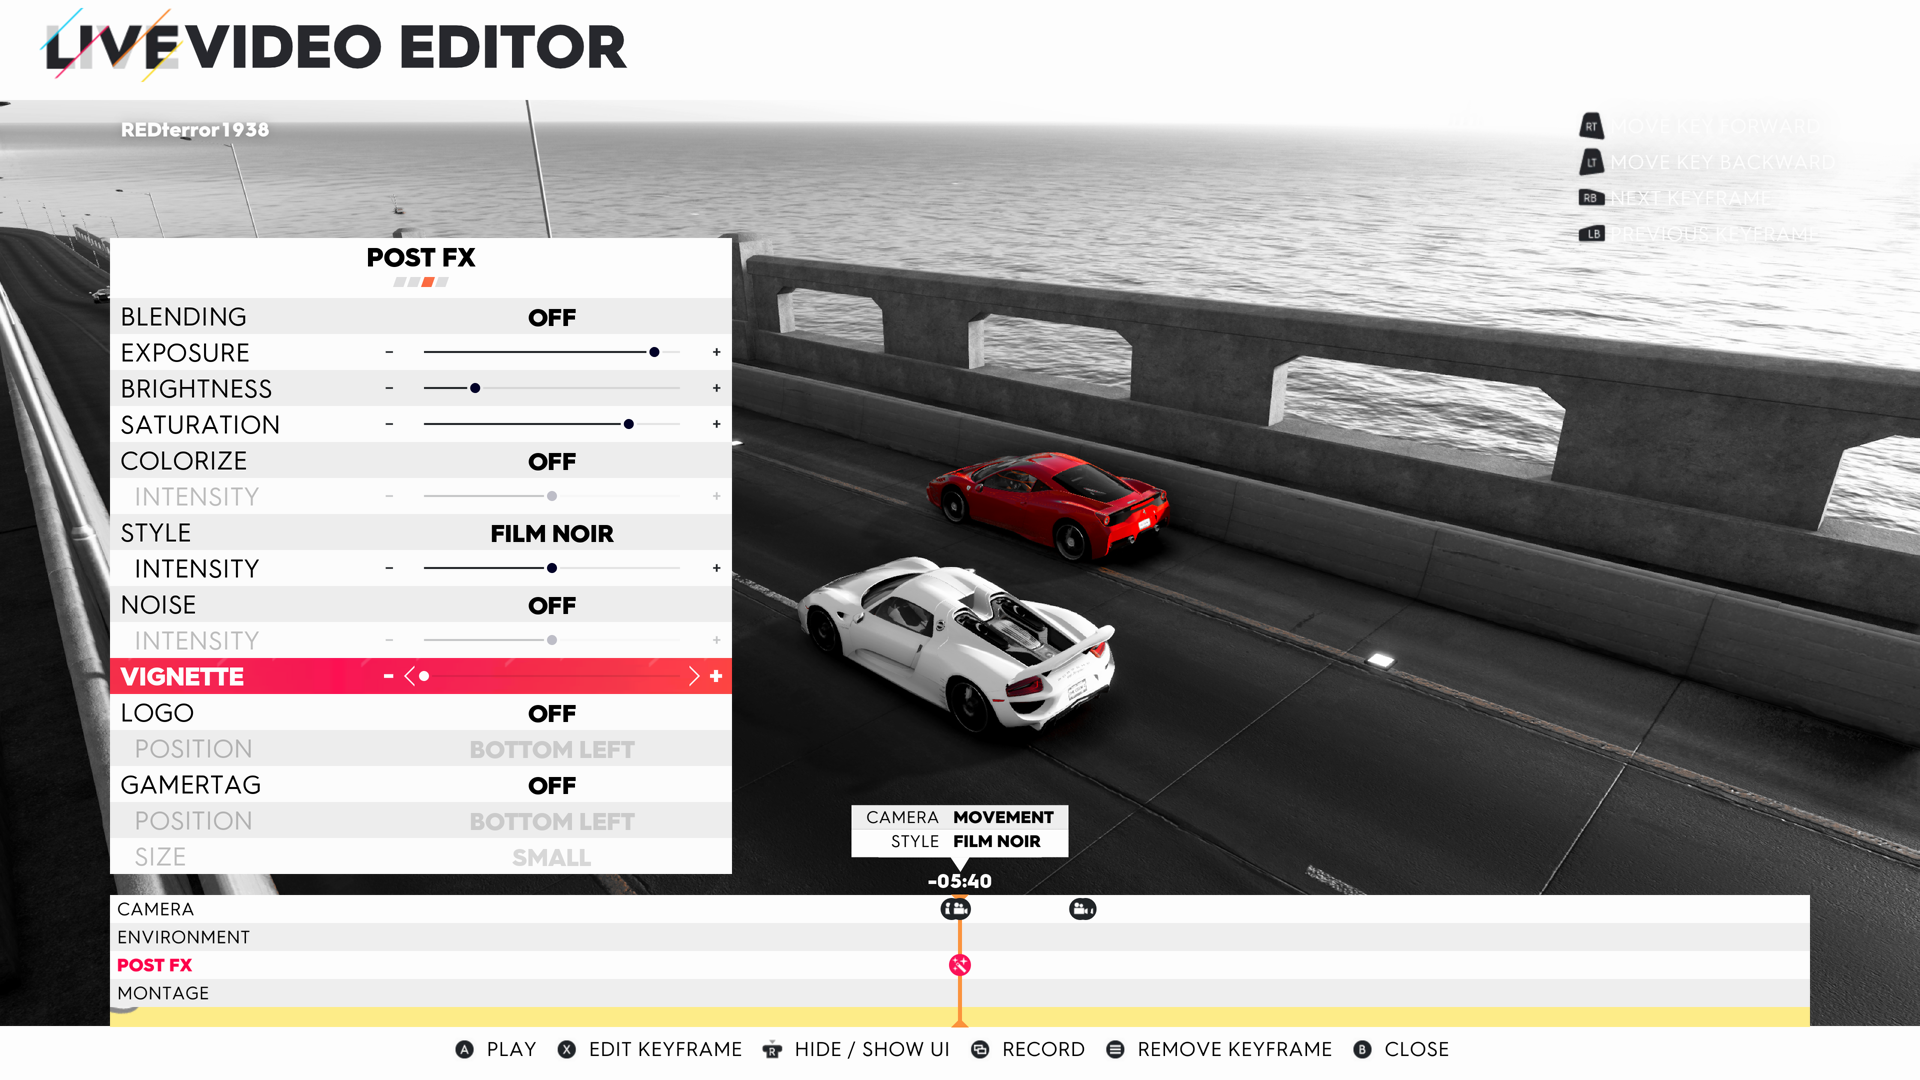 The Crew 2 Live Video Editor